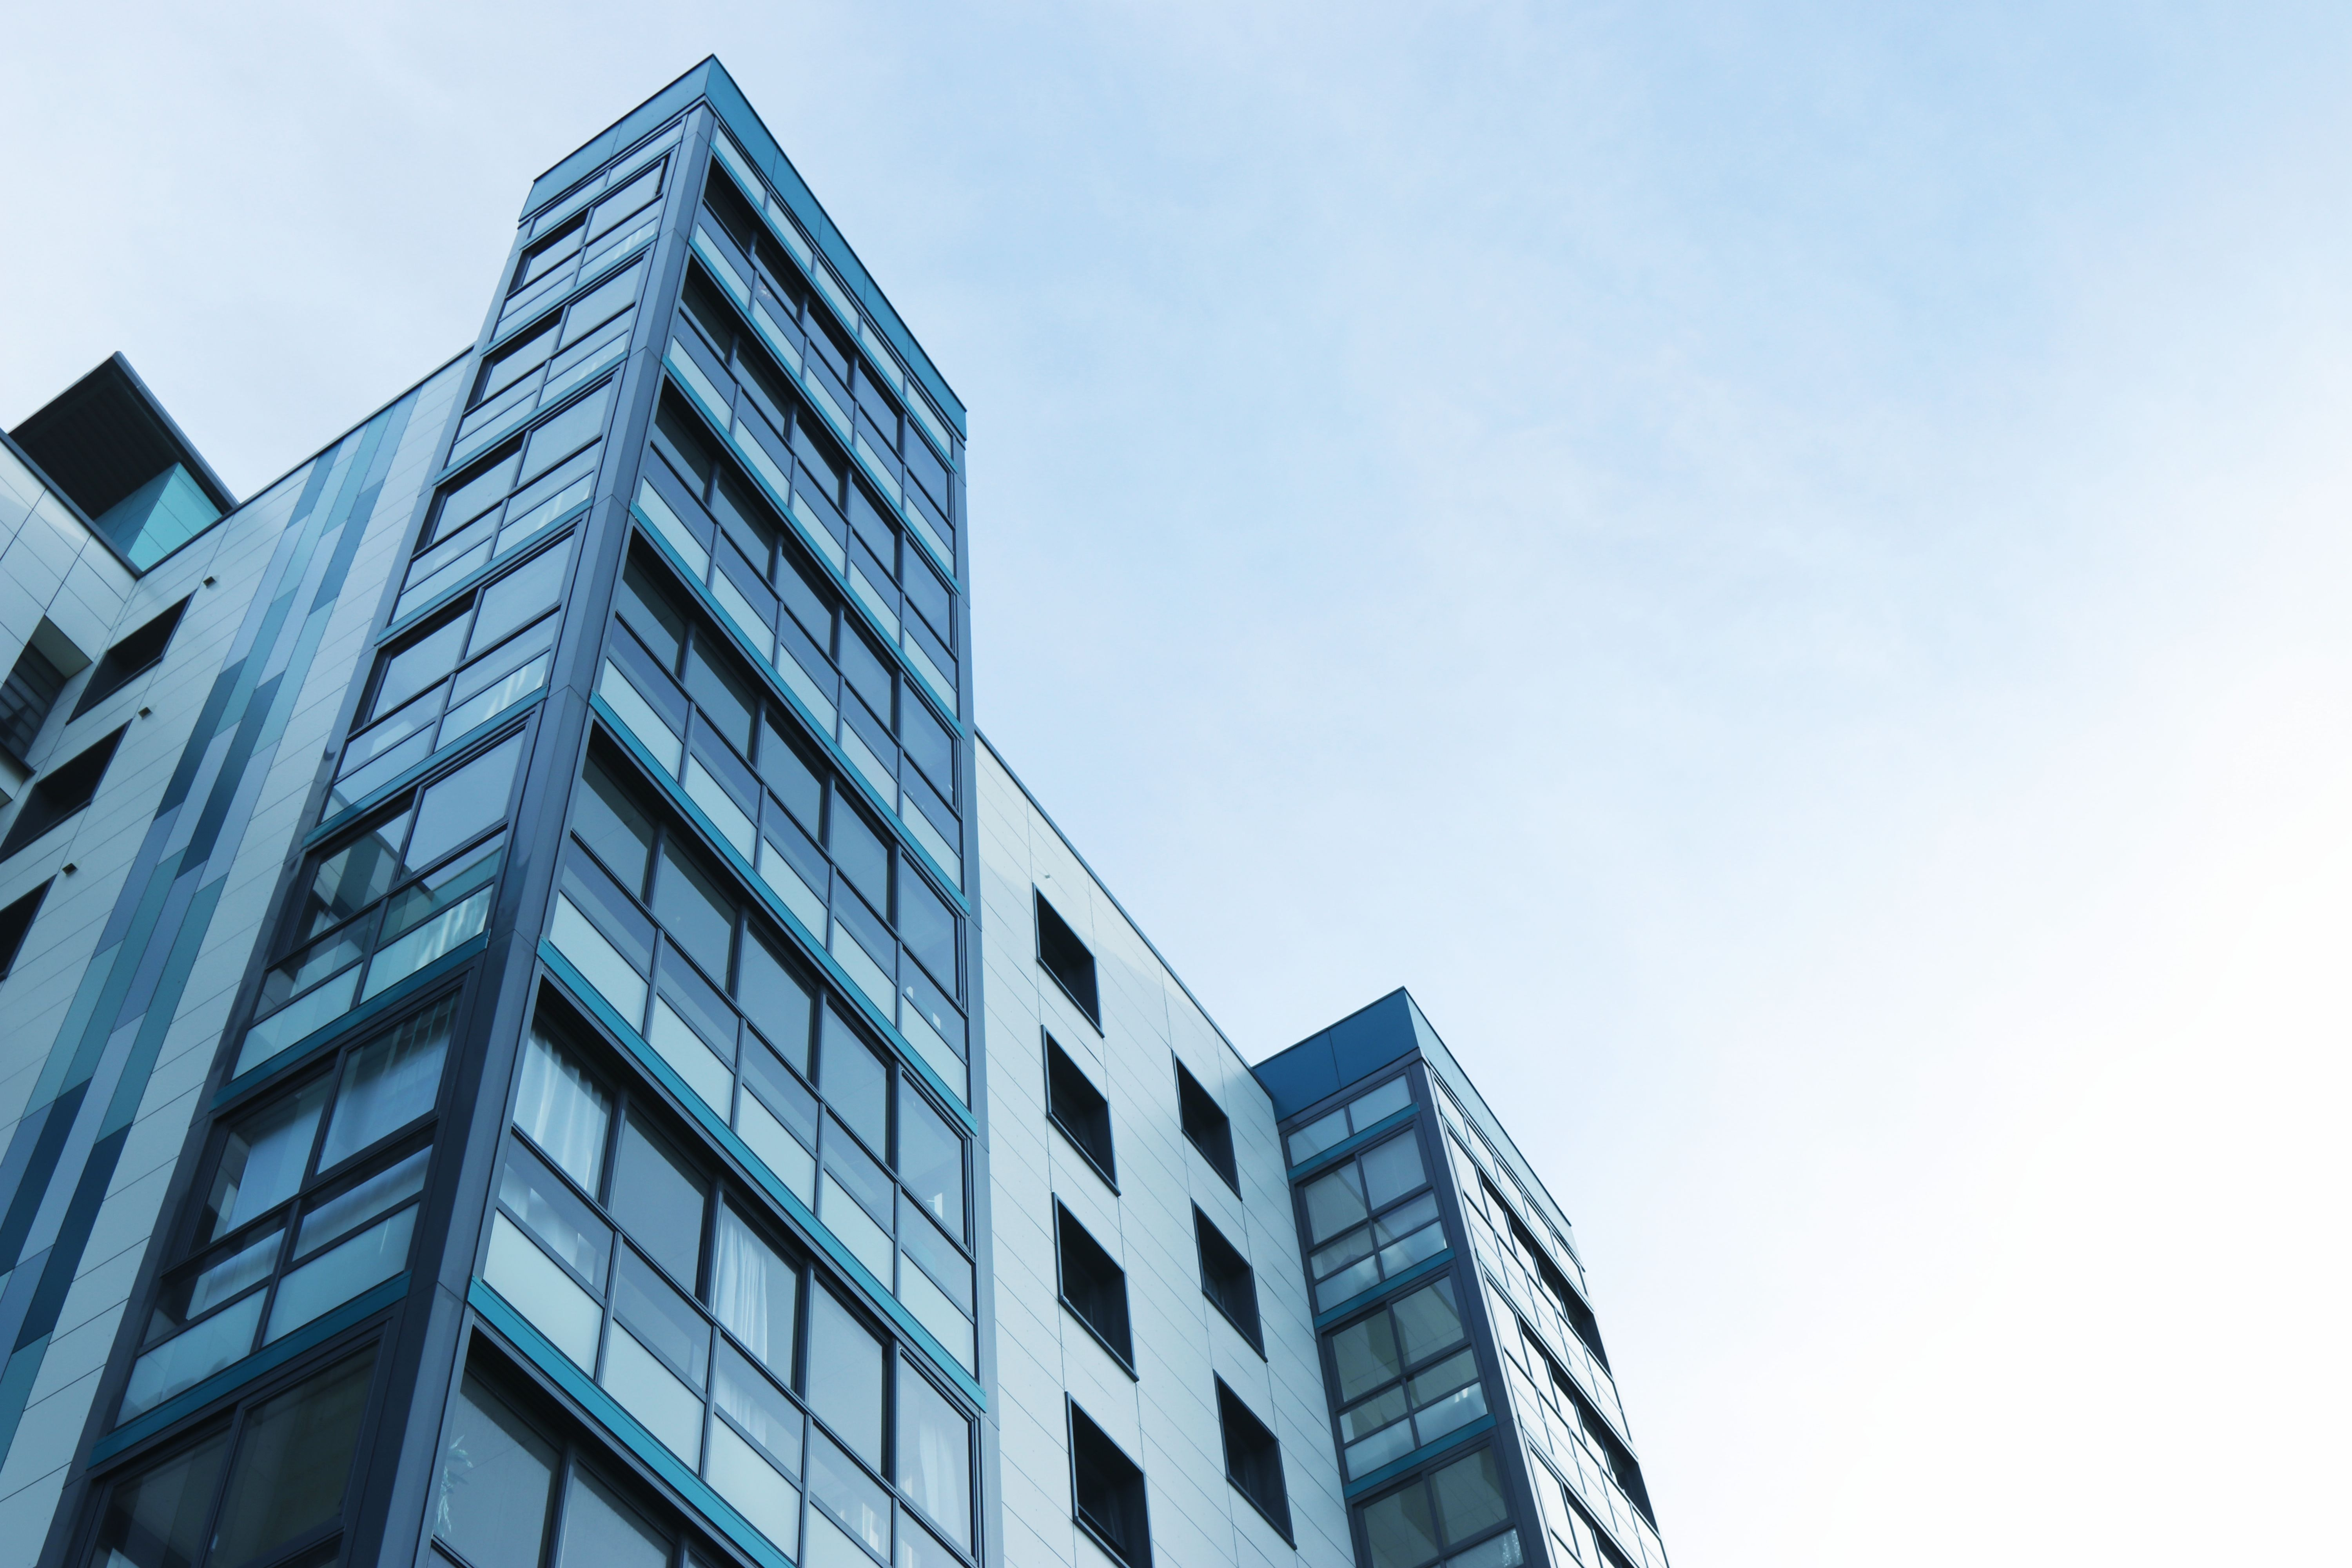 Low Angle View of Office Building Against Sky, Futuristic, Urban, Tallest, Structure, HQ Photo